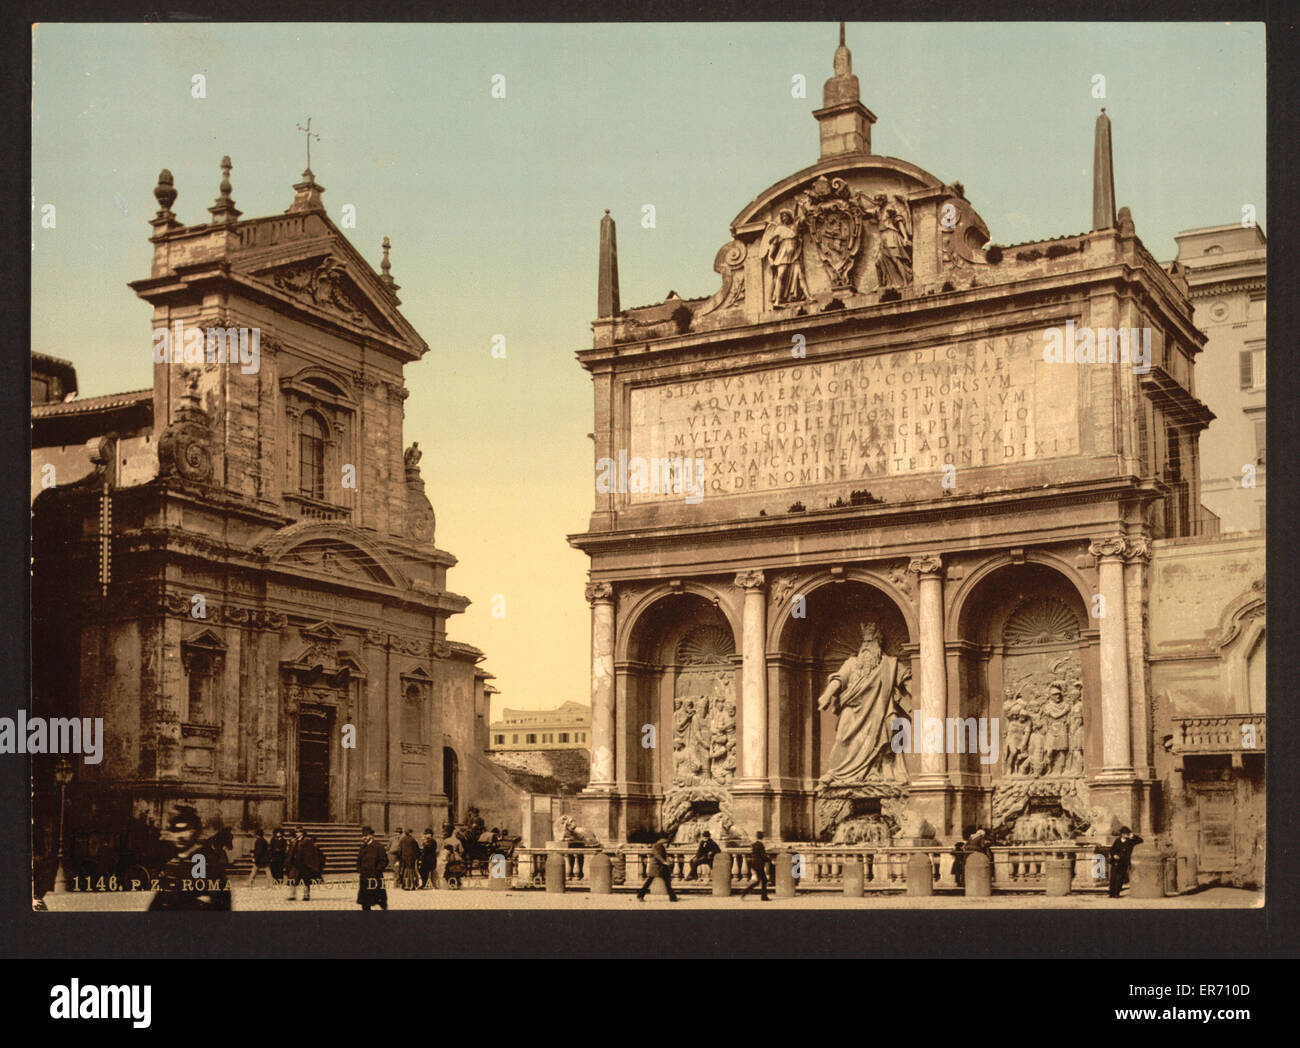 Fountain Acqua Felice, Rome, Italy. Date between ca. 1890 and ca. 1900. - Stock Image